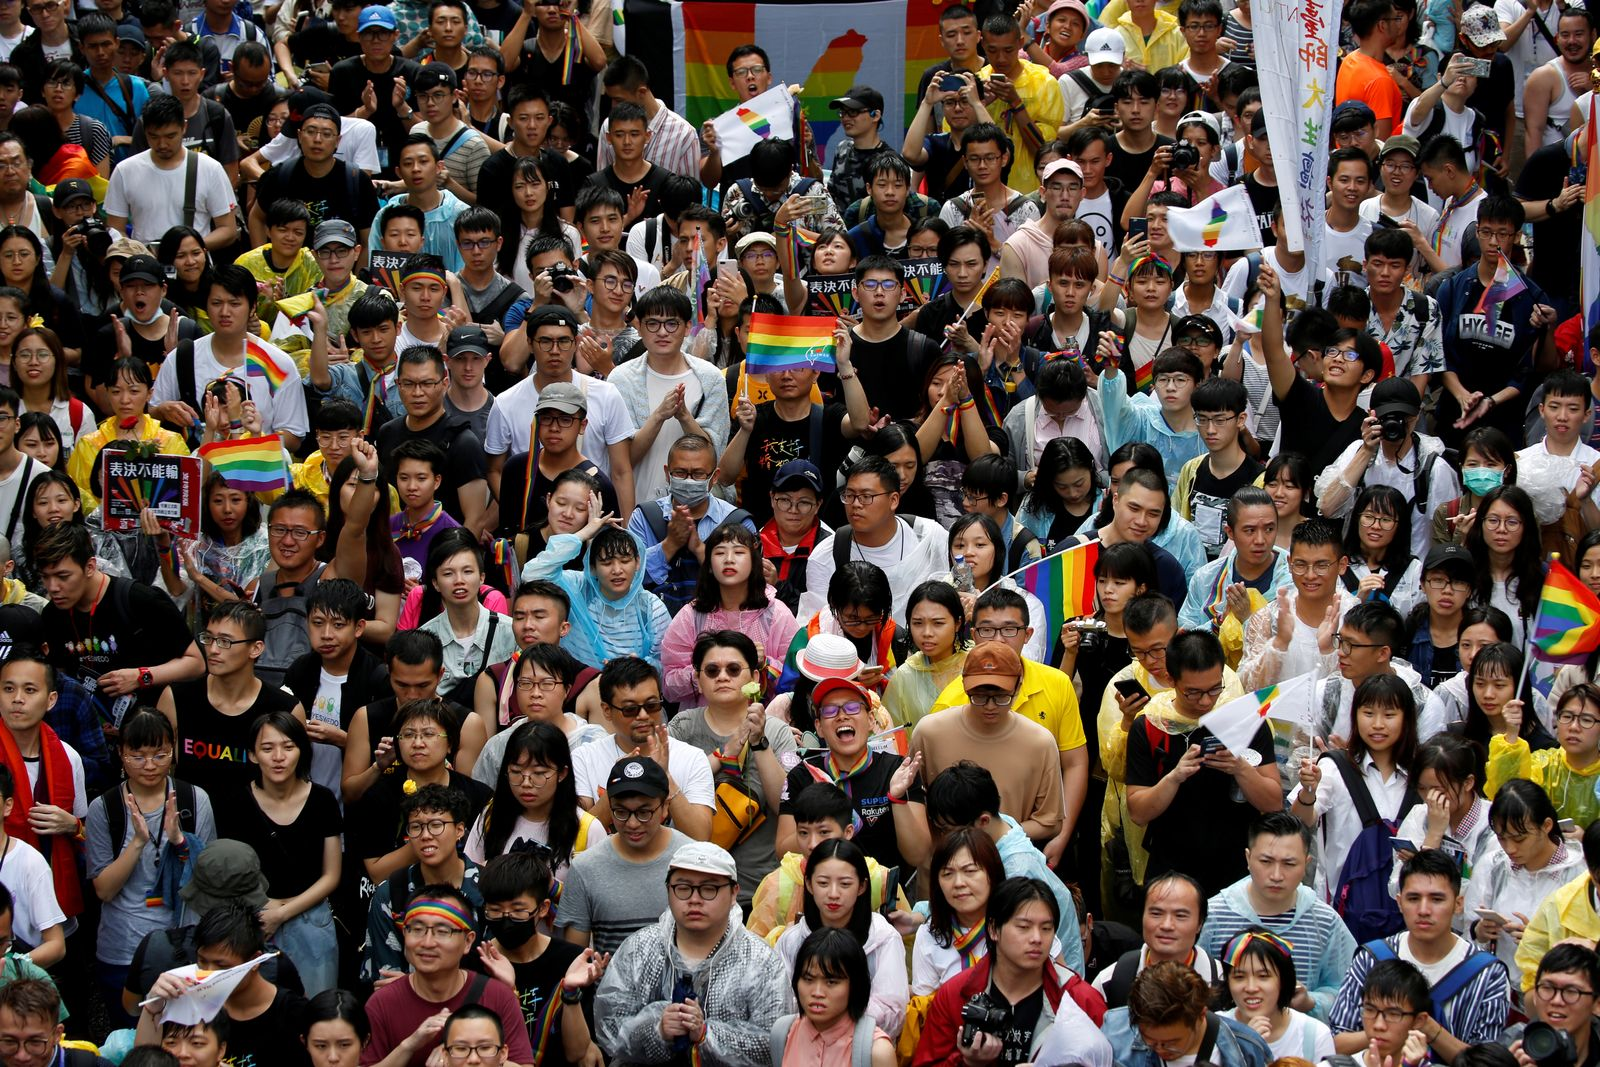 Same-sex marriage supporters hold umbrellas and rainbow flags as they take part in a rally during a parliament vote on three different draft bills of a same-sex marriage law, outside the Legislative Yuan in Taipei